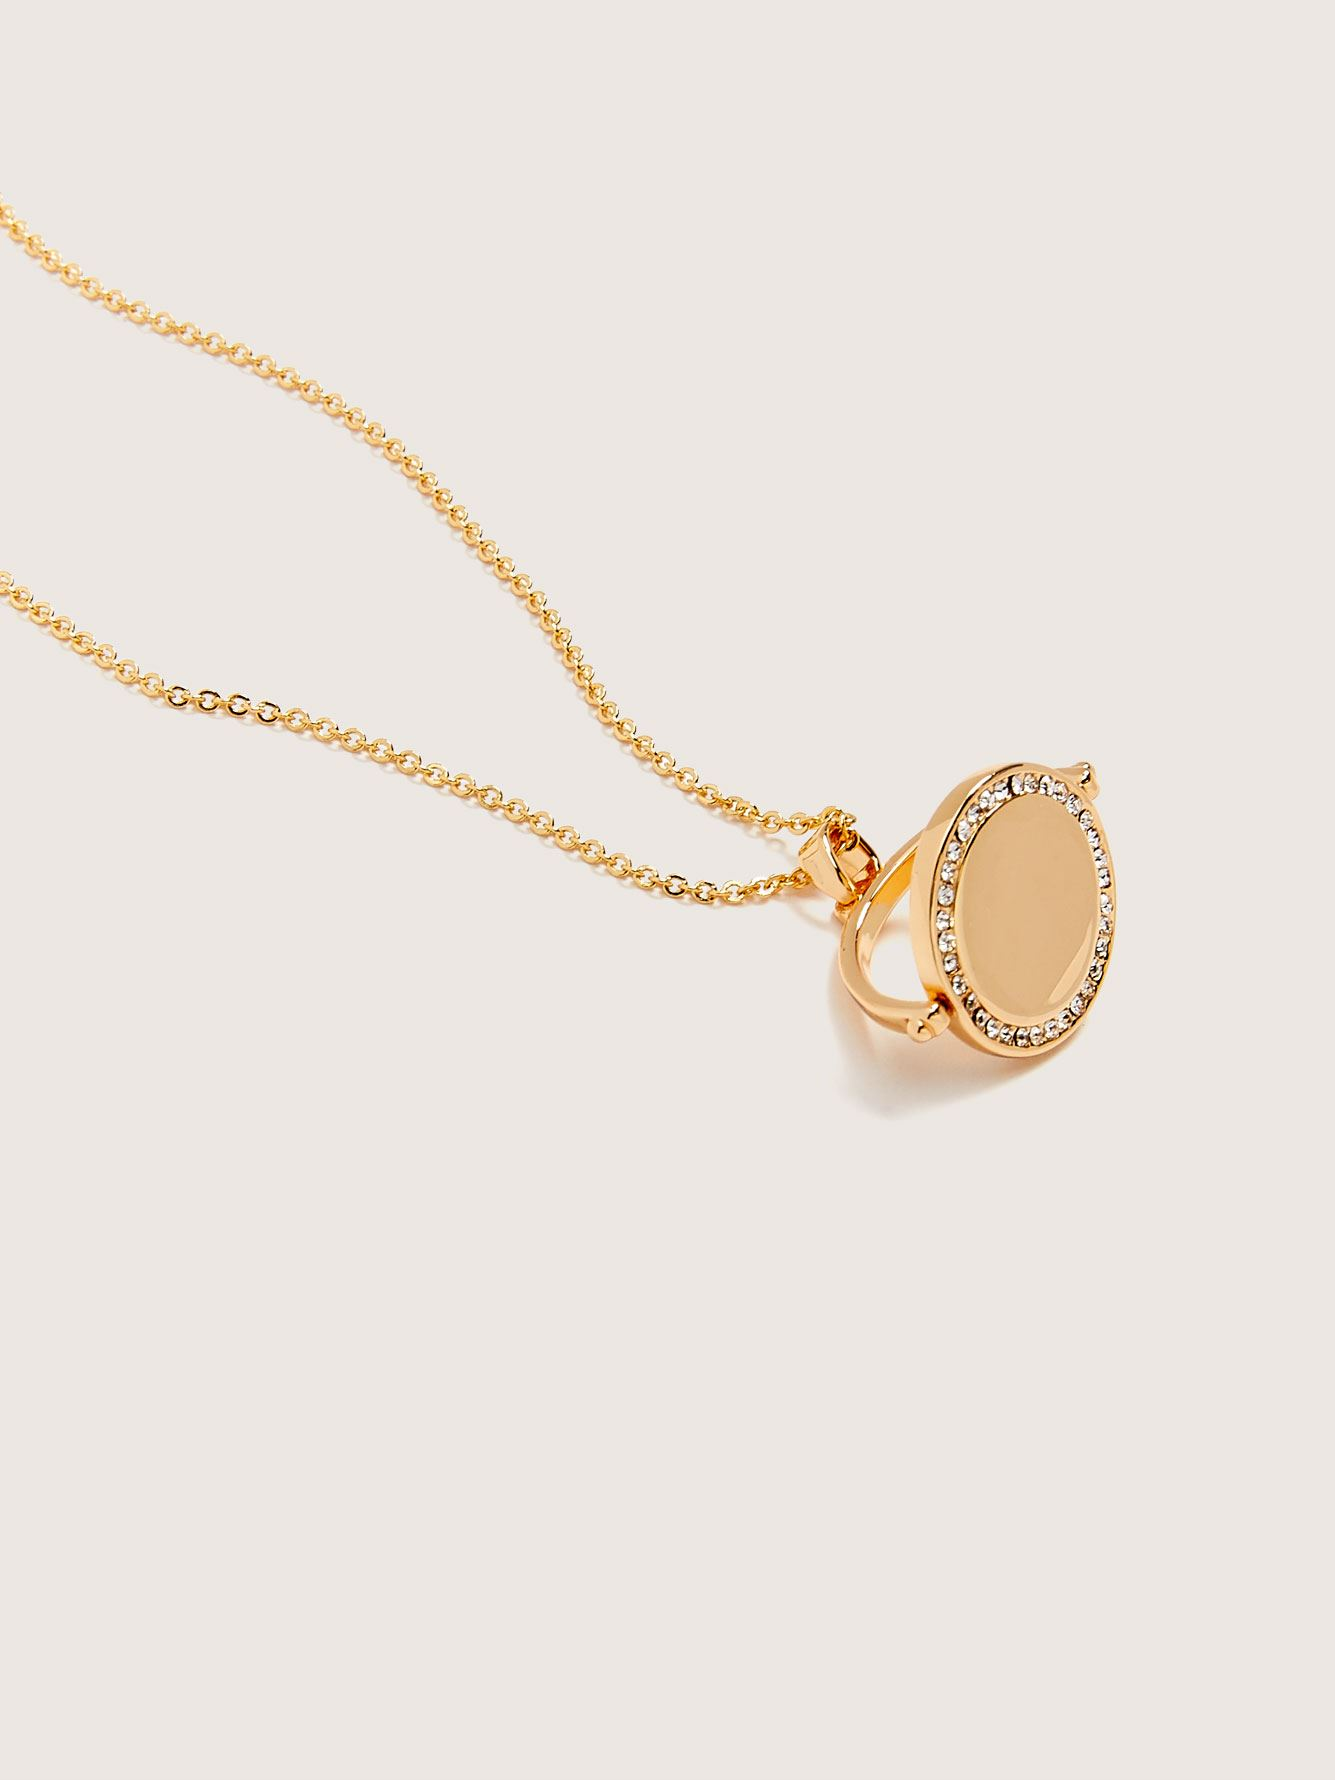 14K Gold Plated Necklace with Charm - Addition Elle